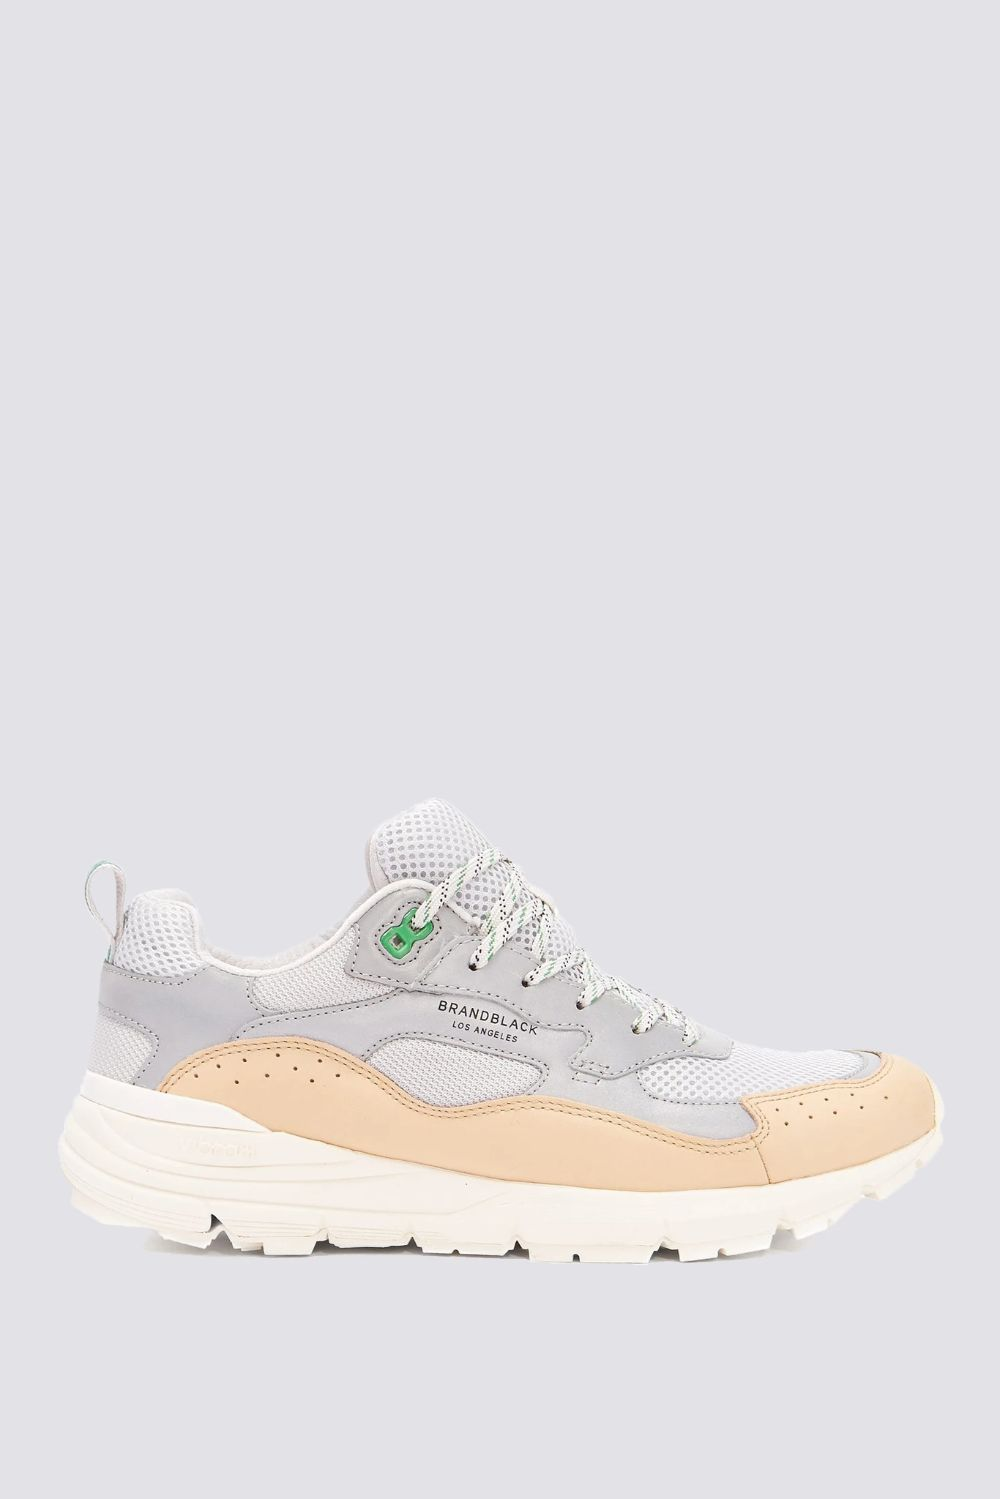 Inspired by classic trainers, the Nomo blends trail ready functionality with quality materials. Set on a chunky Vibram® sole, the upper is constructed with almond leather, mesh and reflective paneling for high visibility. Includes contrast lacing and bold eyelets. *All sizes are listed in Unisex. Women's sizes are 1.5